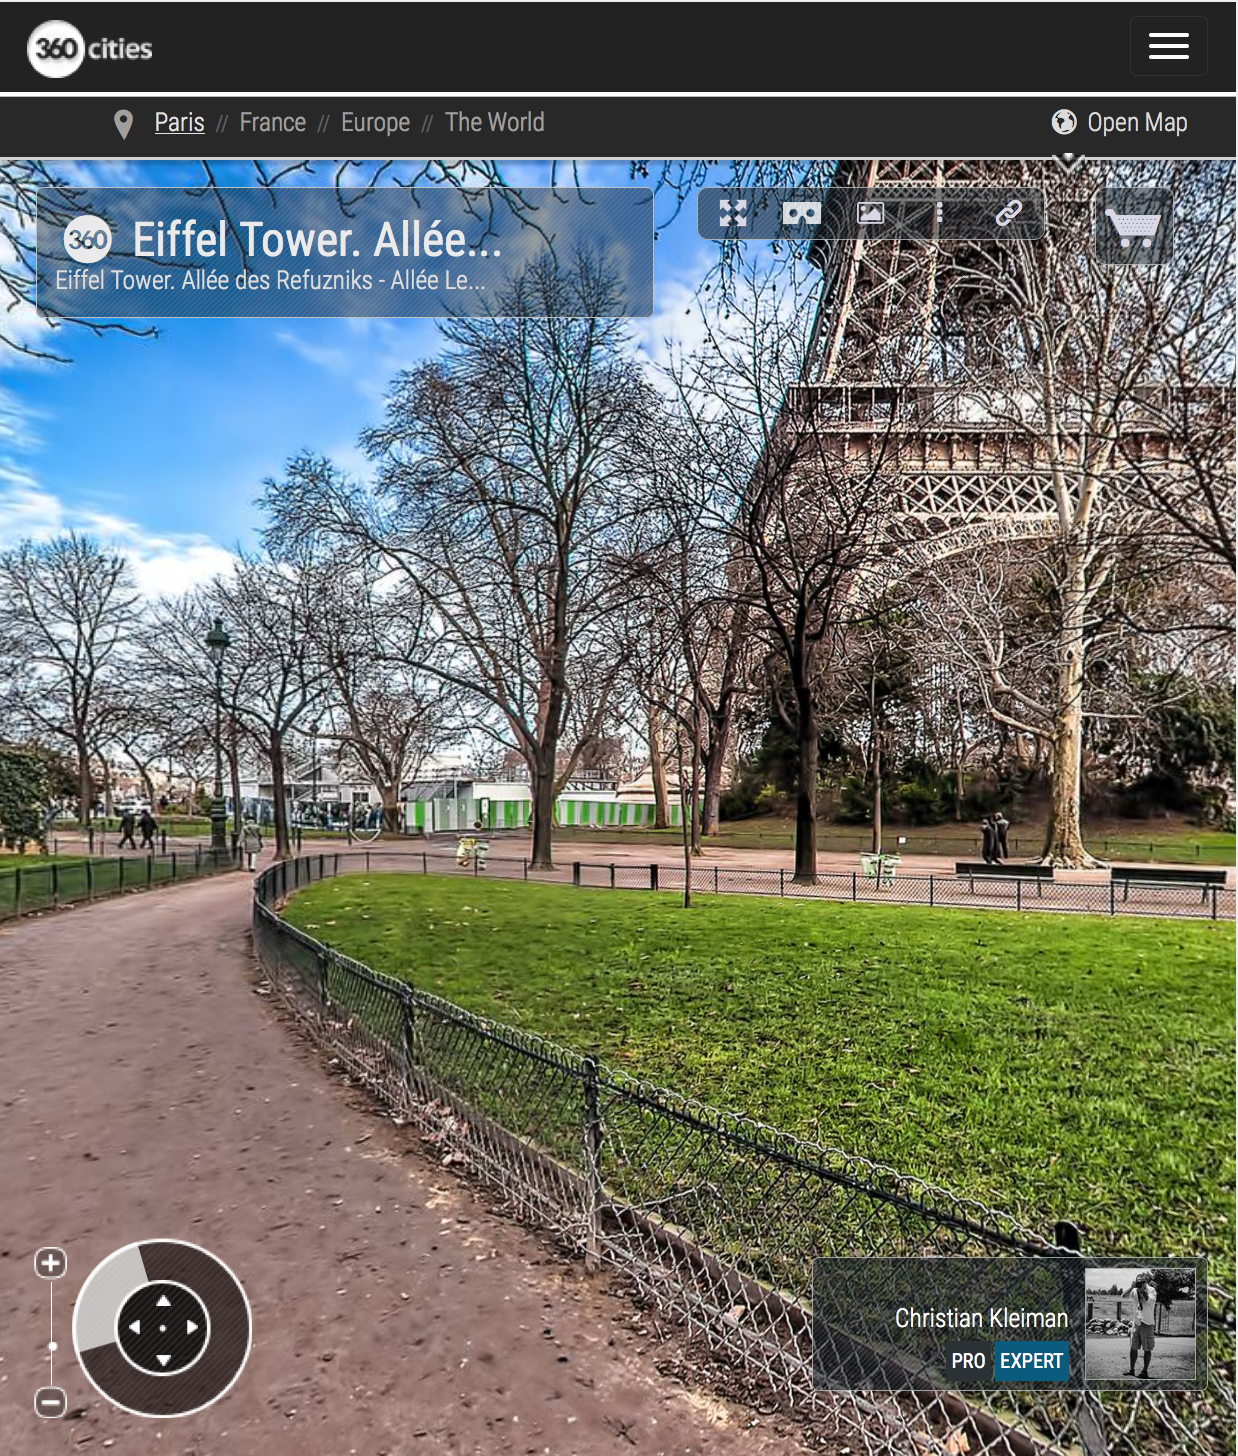 Eiffel Tower. Allée des Refuzniks - Allée Leon Bourgeois - Creative 360 VR Spherical Panoramic Photography - Emblematic Paris by © Christian Kleiman